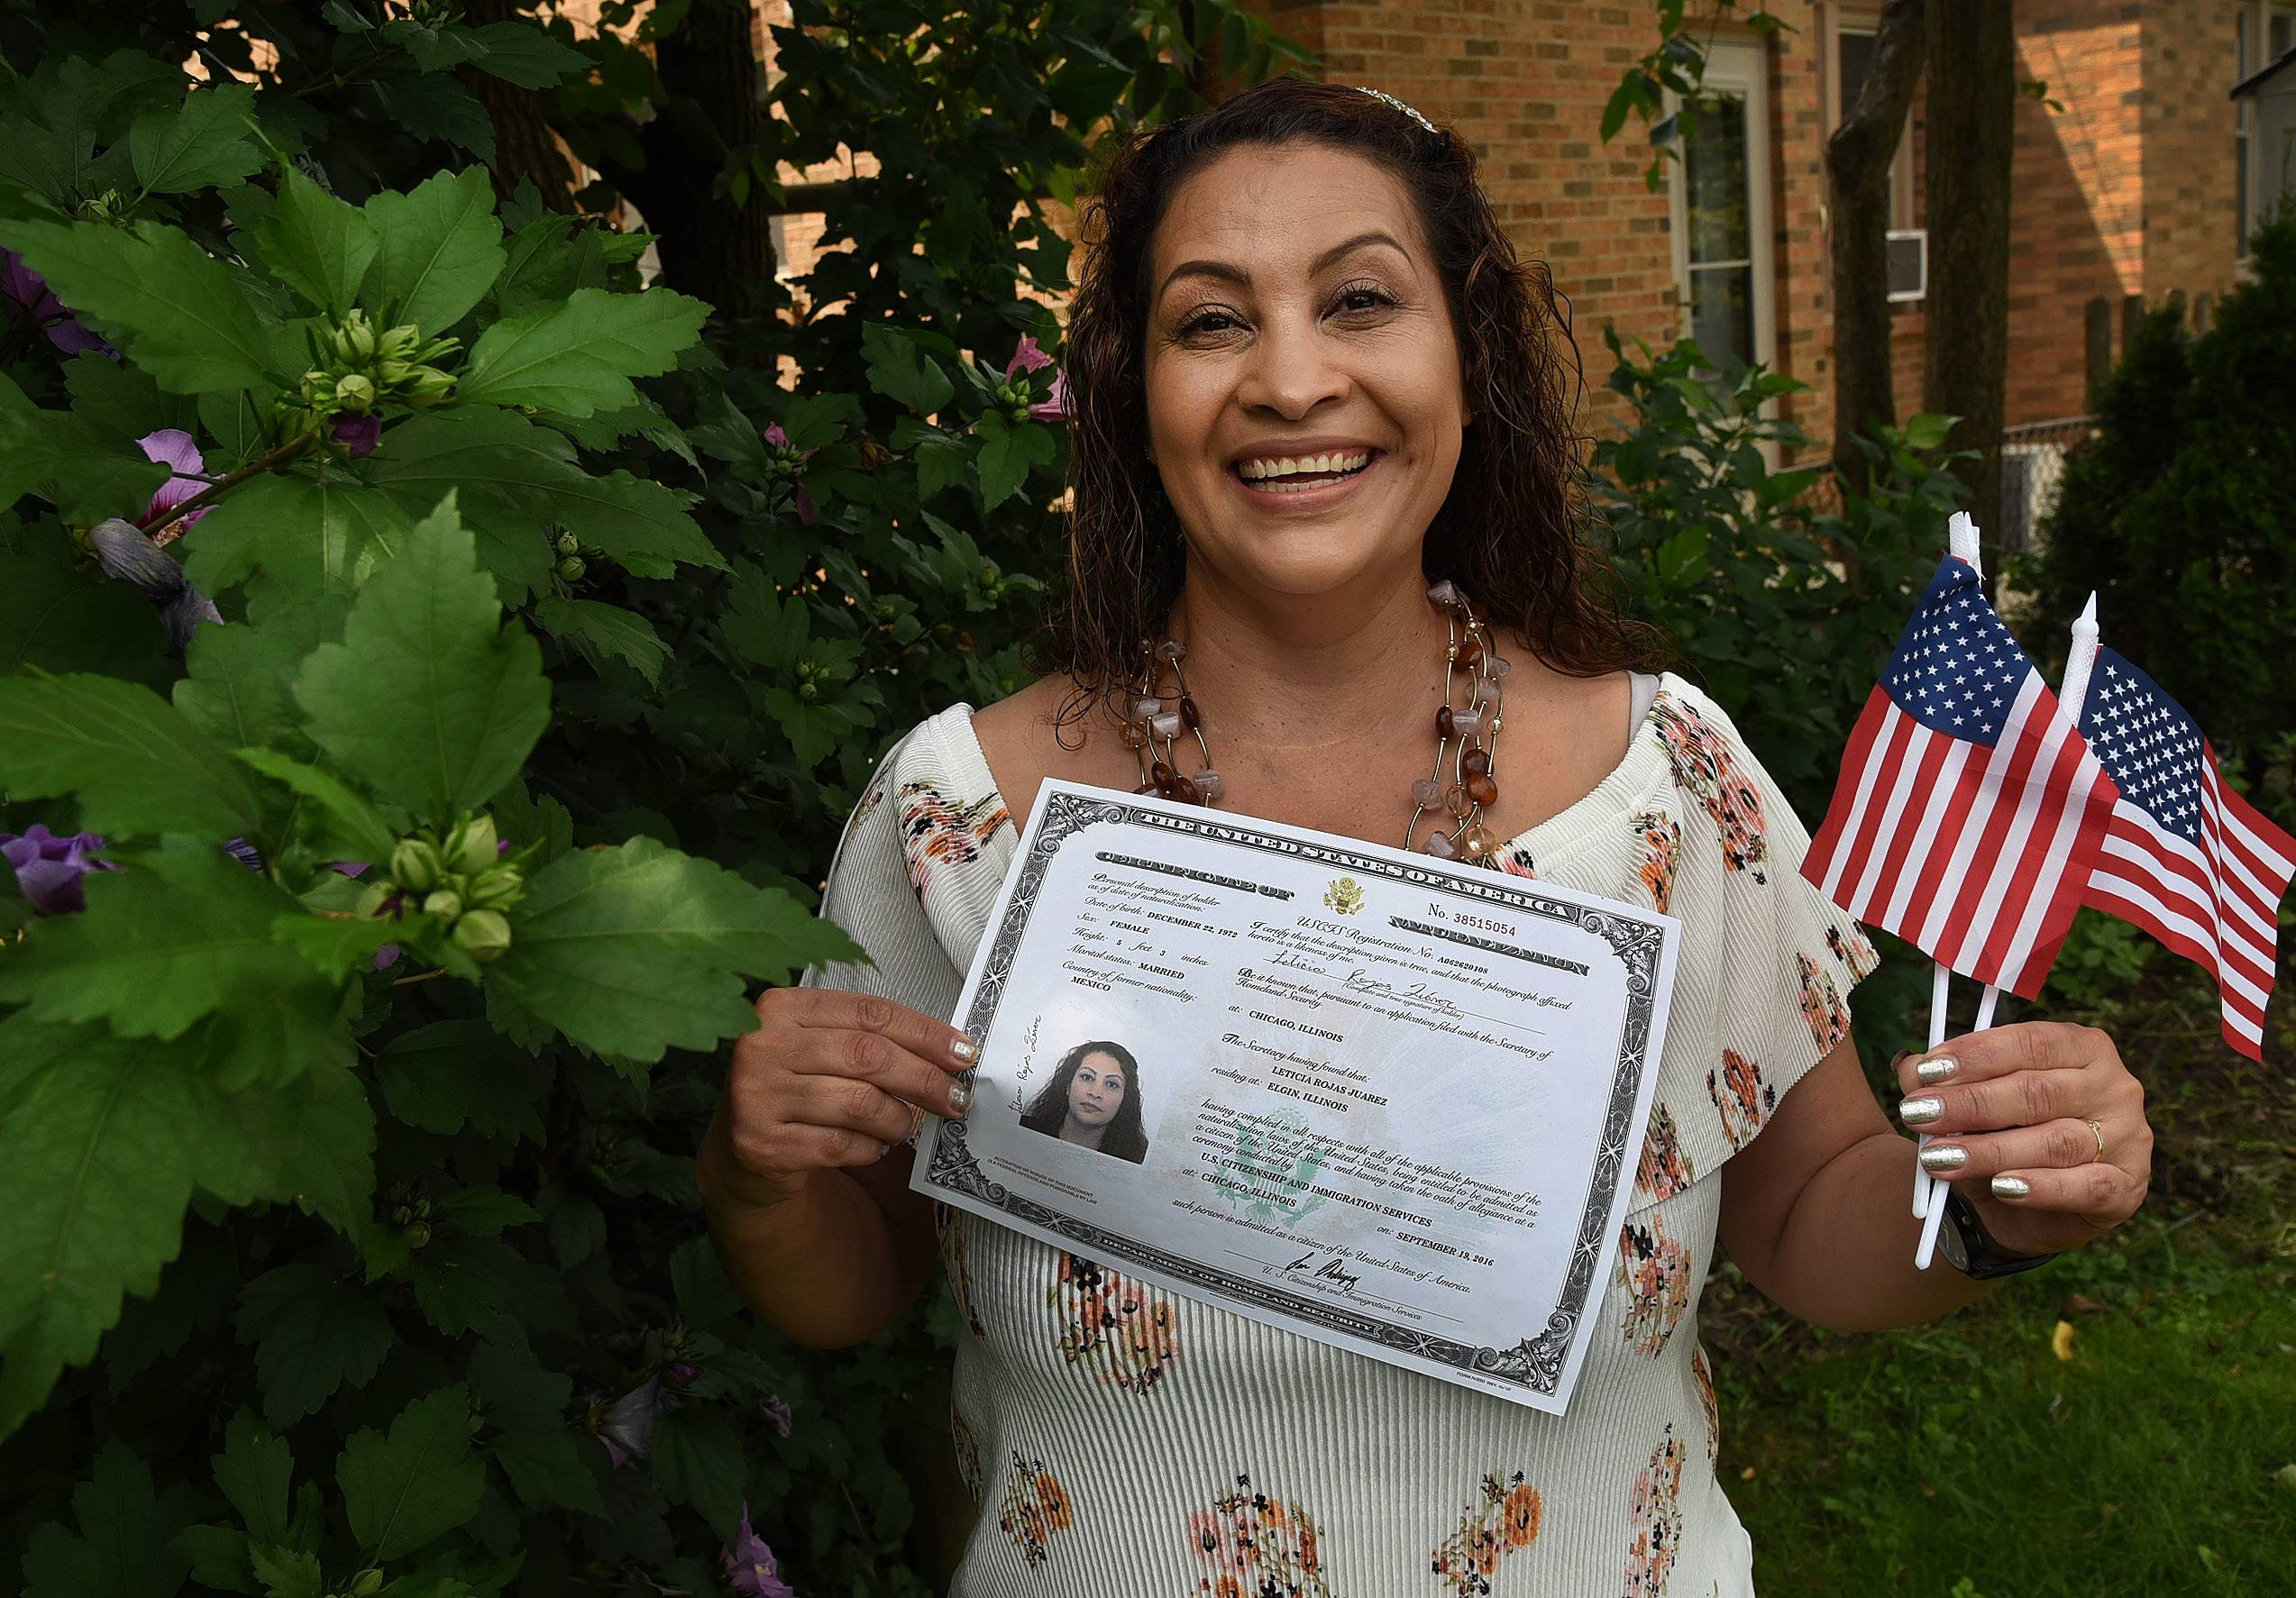 Leticia Rojas of Elgin became a U.S. citizen in September. Here she is in her backyard with her certificate of naturalization.